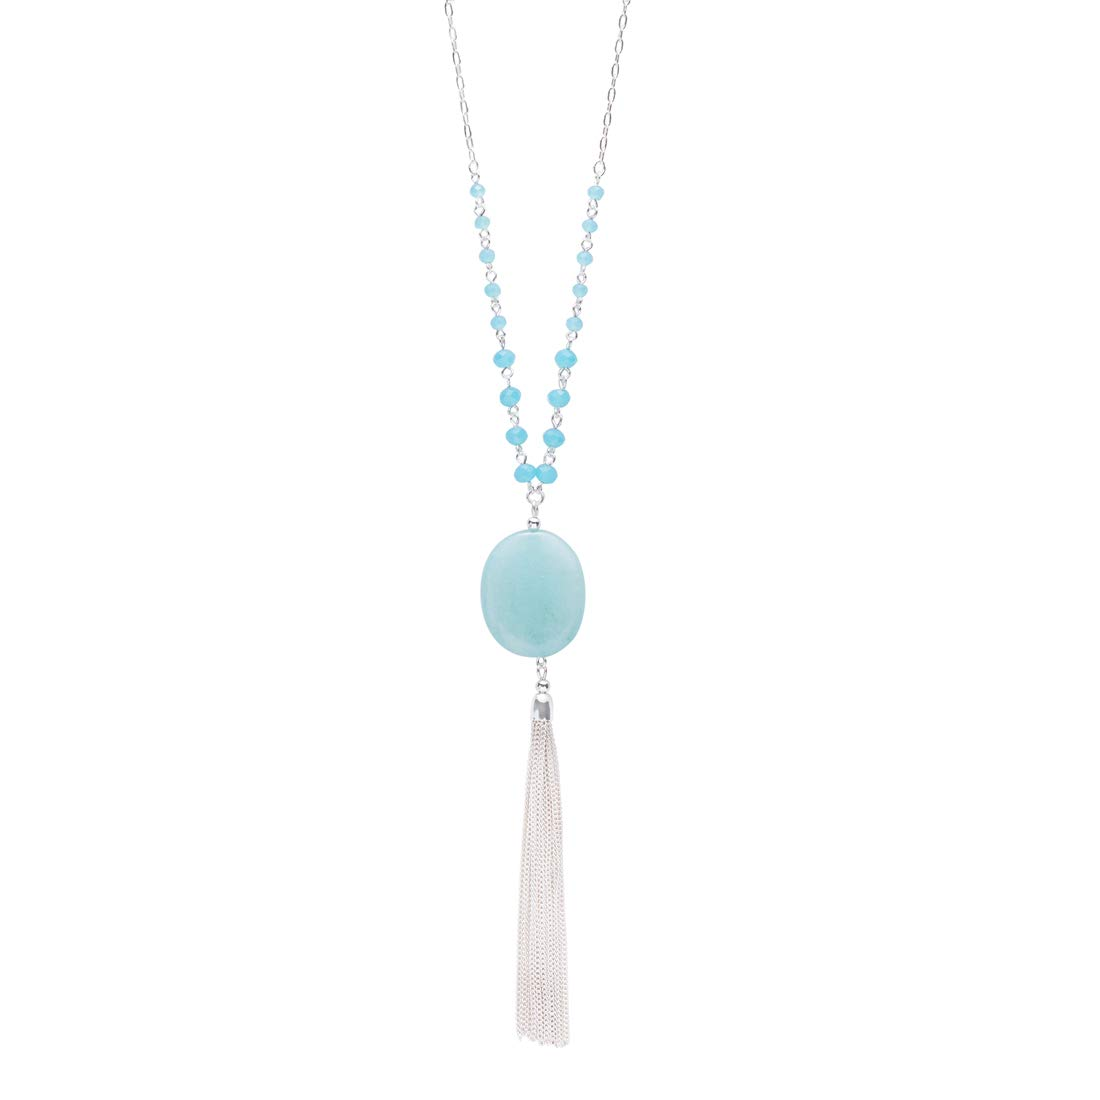 CONCISE ROYAL Light Blue Fringe Tassel Pendant Long Necklaces for Women Girls by CONCISE ROYAL